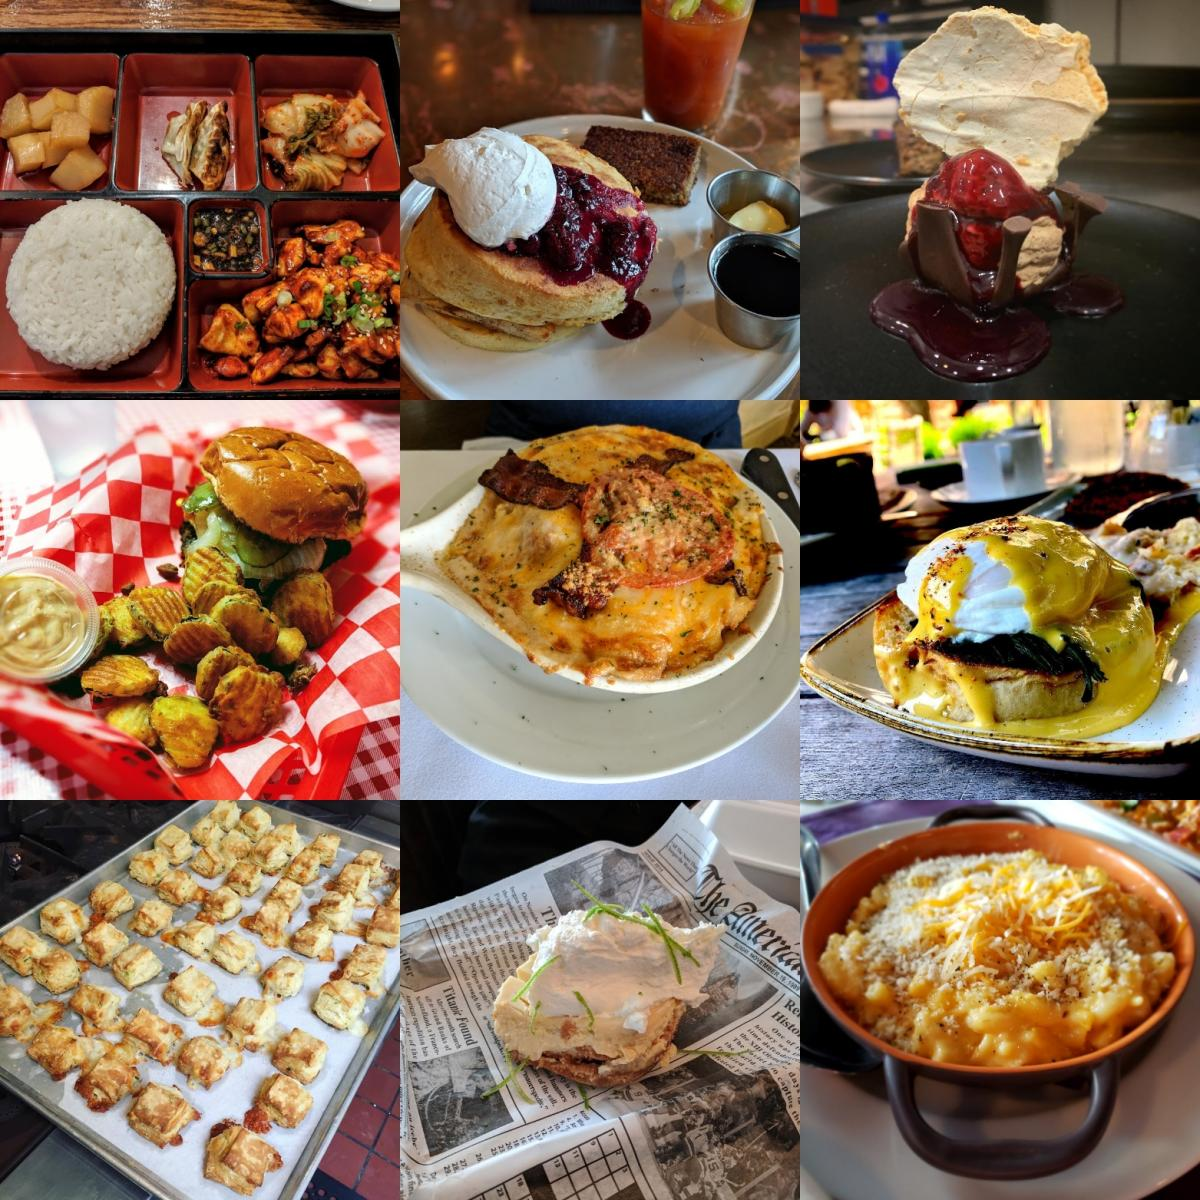 A collage of biscuits, mac and cheese, lime pie, korean food, a burger, a hot brown, eggs benedict made with goetta, and lemon blueberry pancakes from restaurants in Covington, Newport and Florence Kentucky